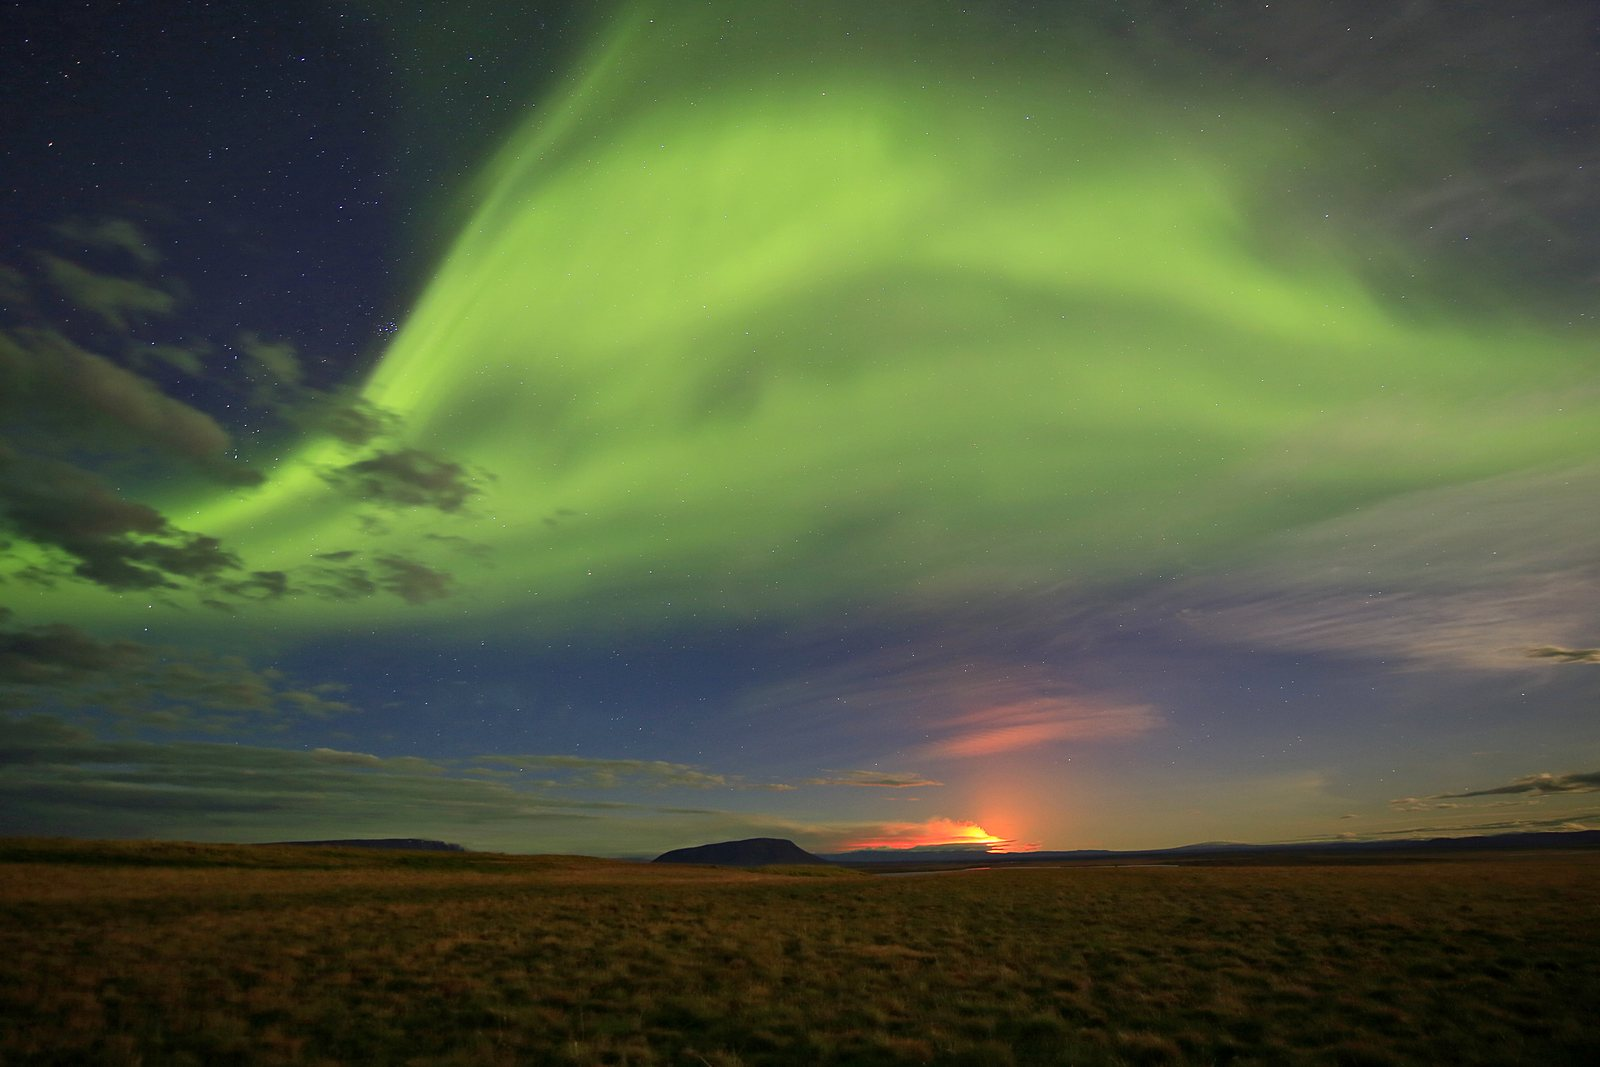 Bárðarbunga, Dyngjujökull, Iceland, aurora borealis, gas cloud, glow, glowing, green, night, northern lights, red glow, road, track, wide open, photo